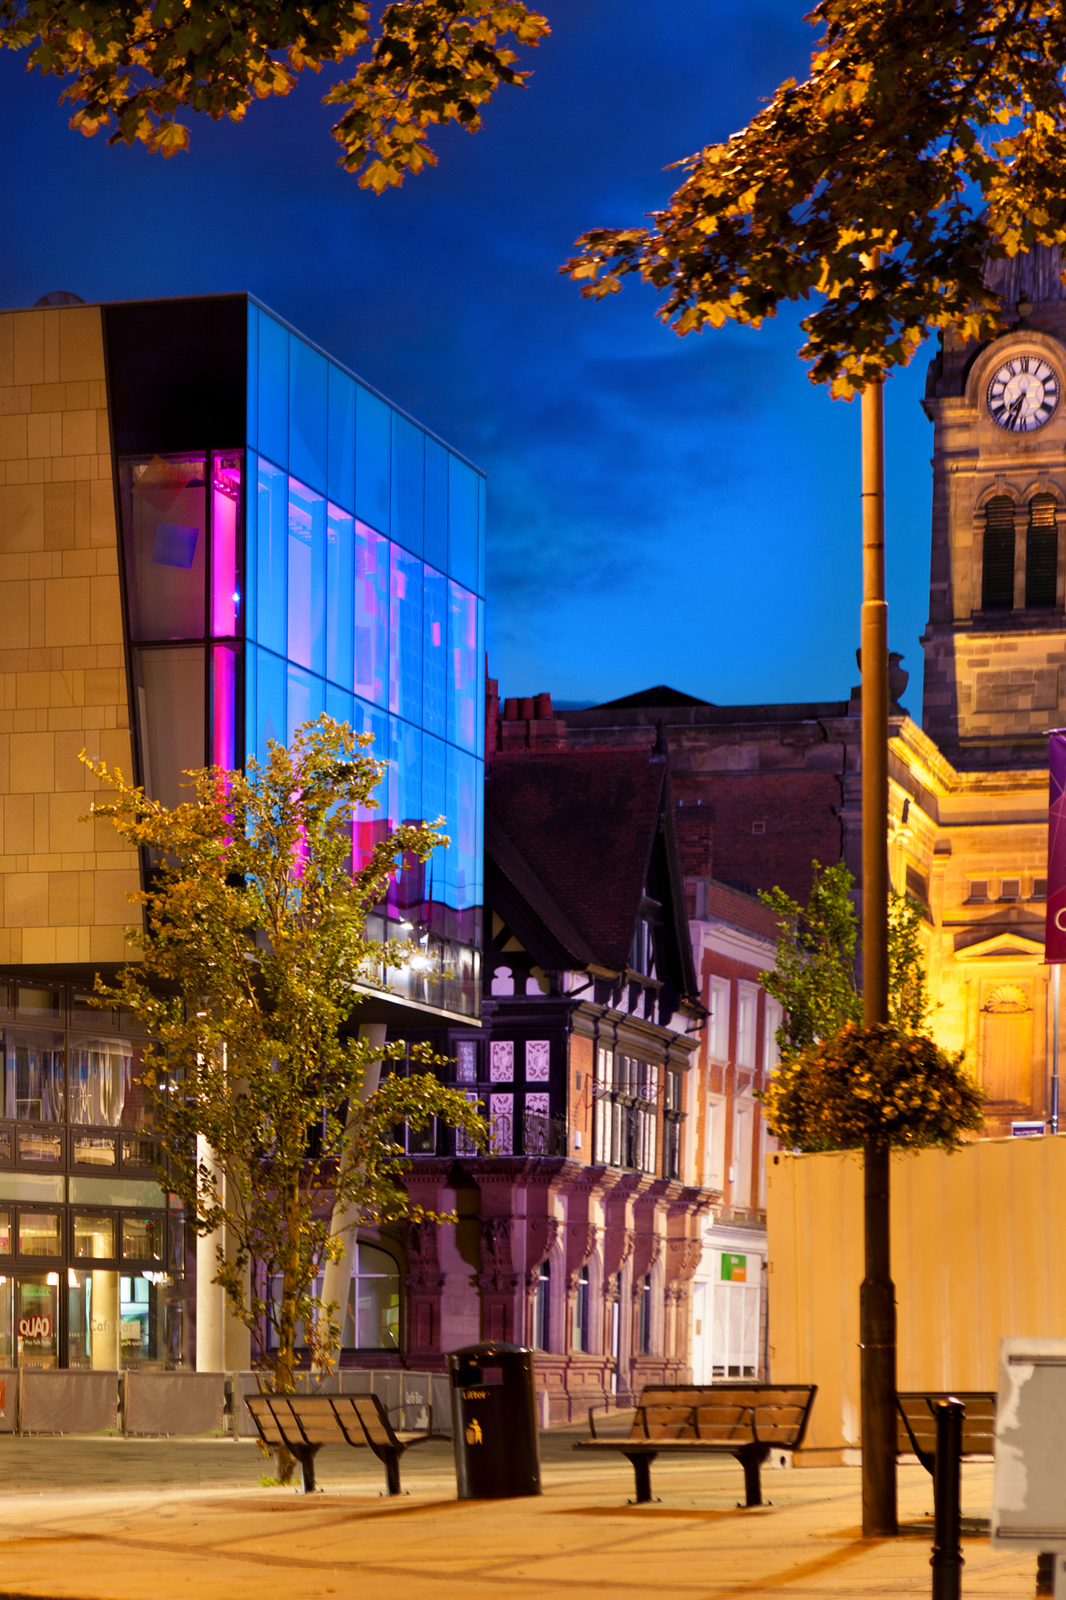 Derby QUAD is one of over 20 spaces in the city to receive a free wi-fi hotspot upgrade.